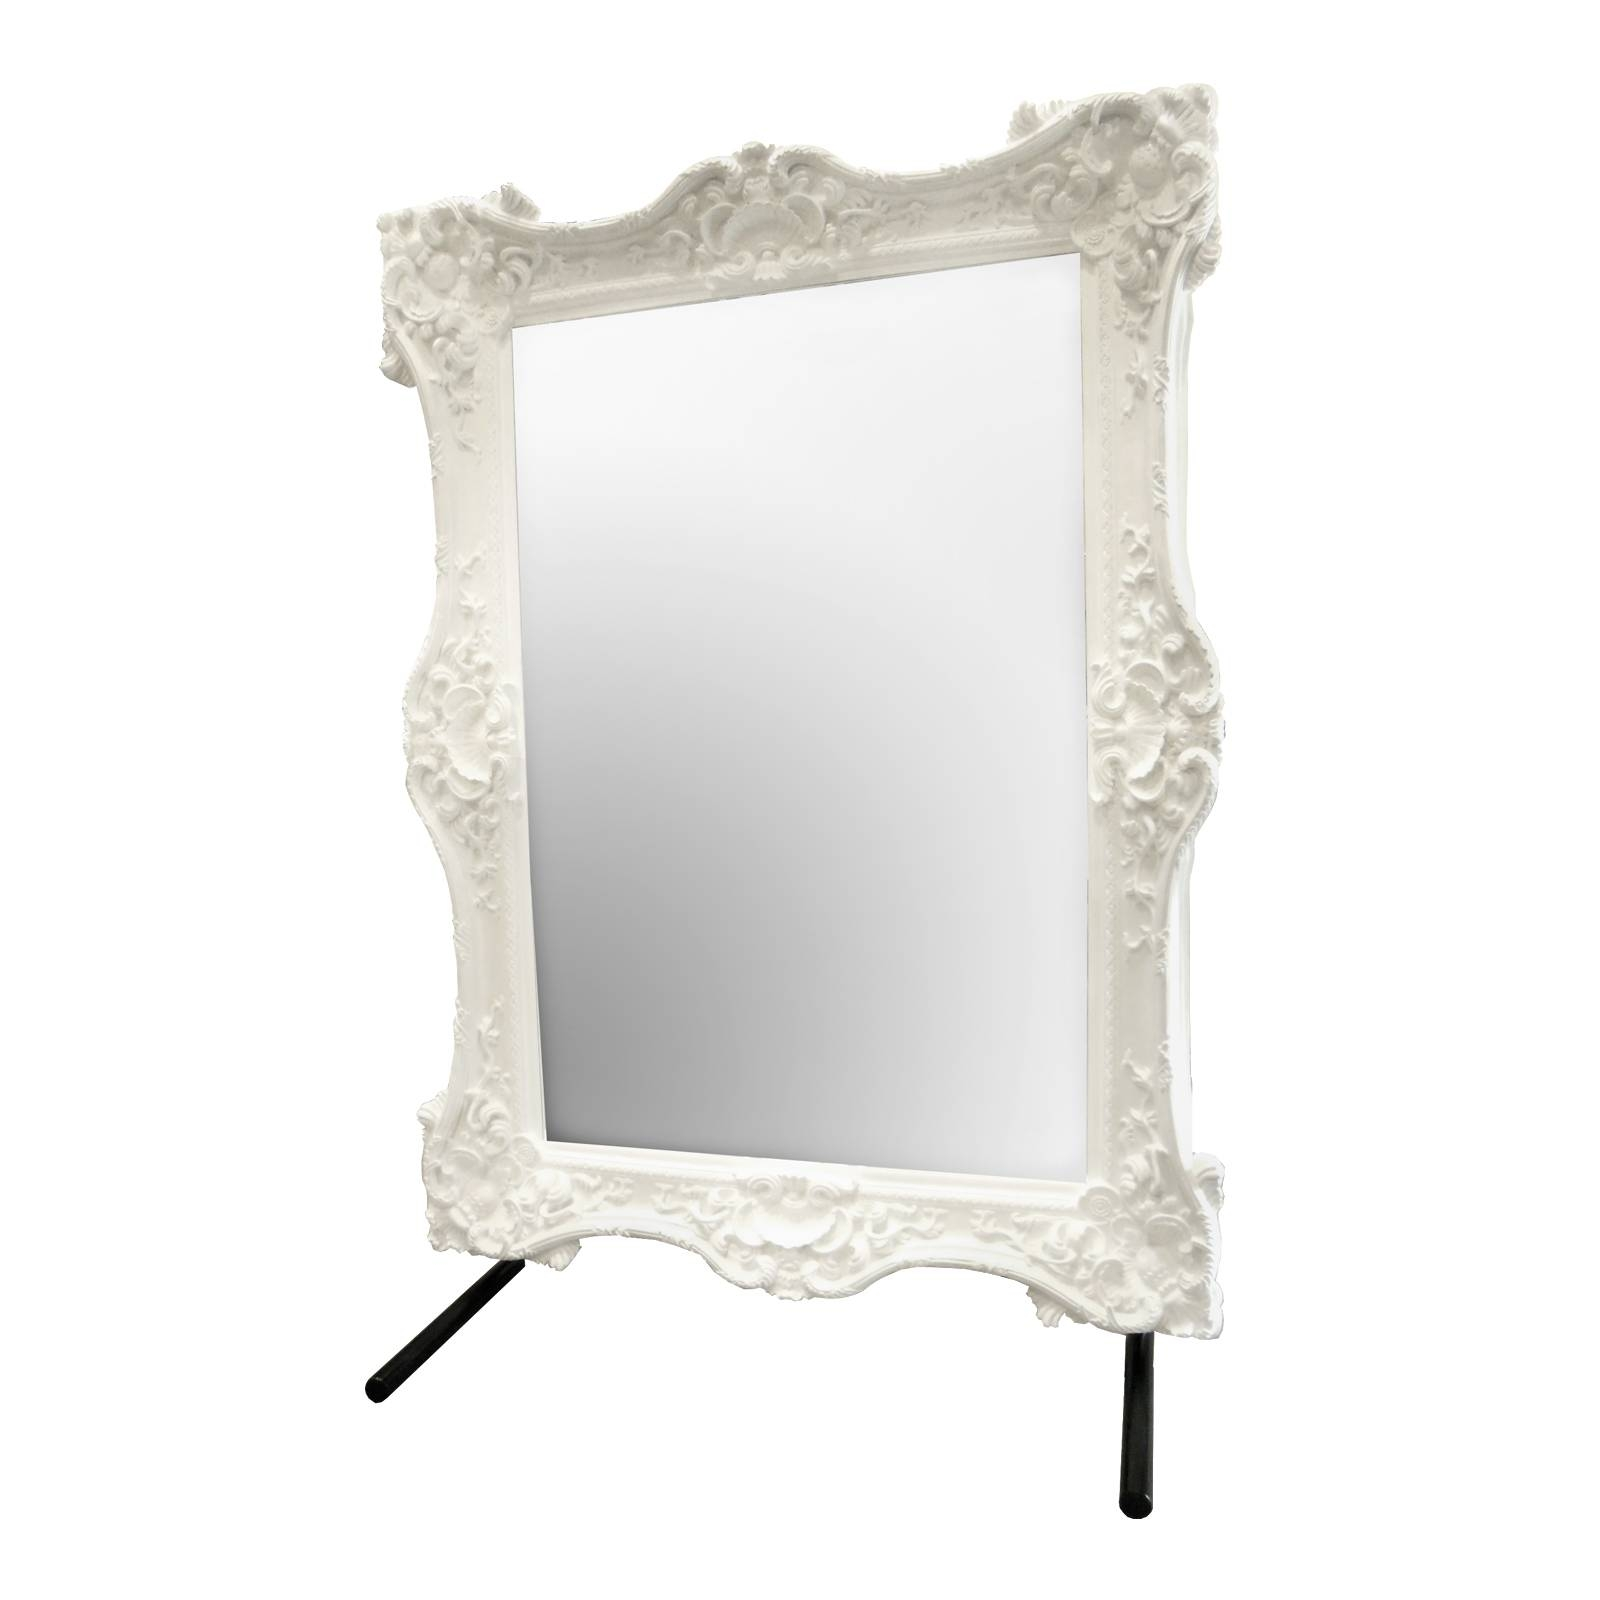 R Grand Baroque Floor Mirror White – Surripui For Baroque Floor Mirrors (View 2 of 15)